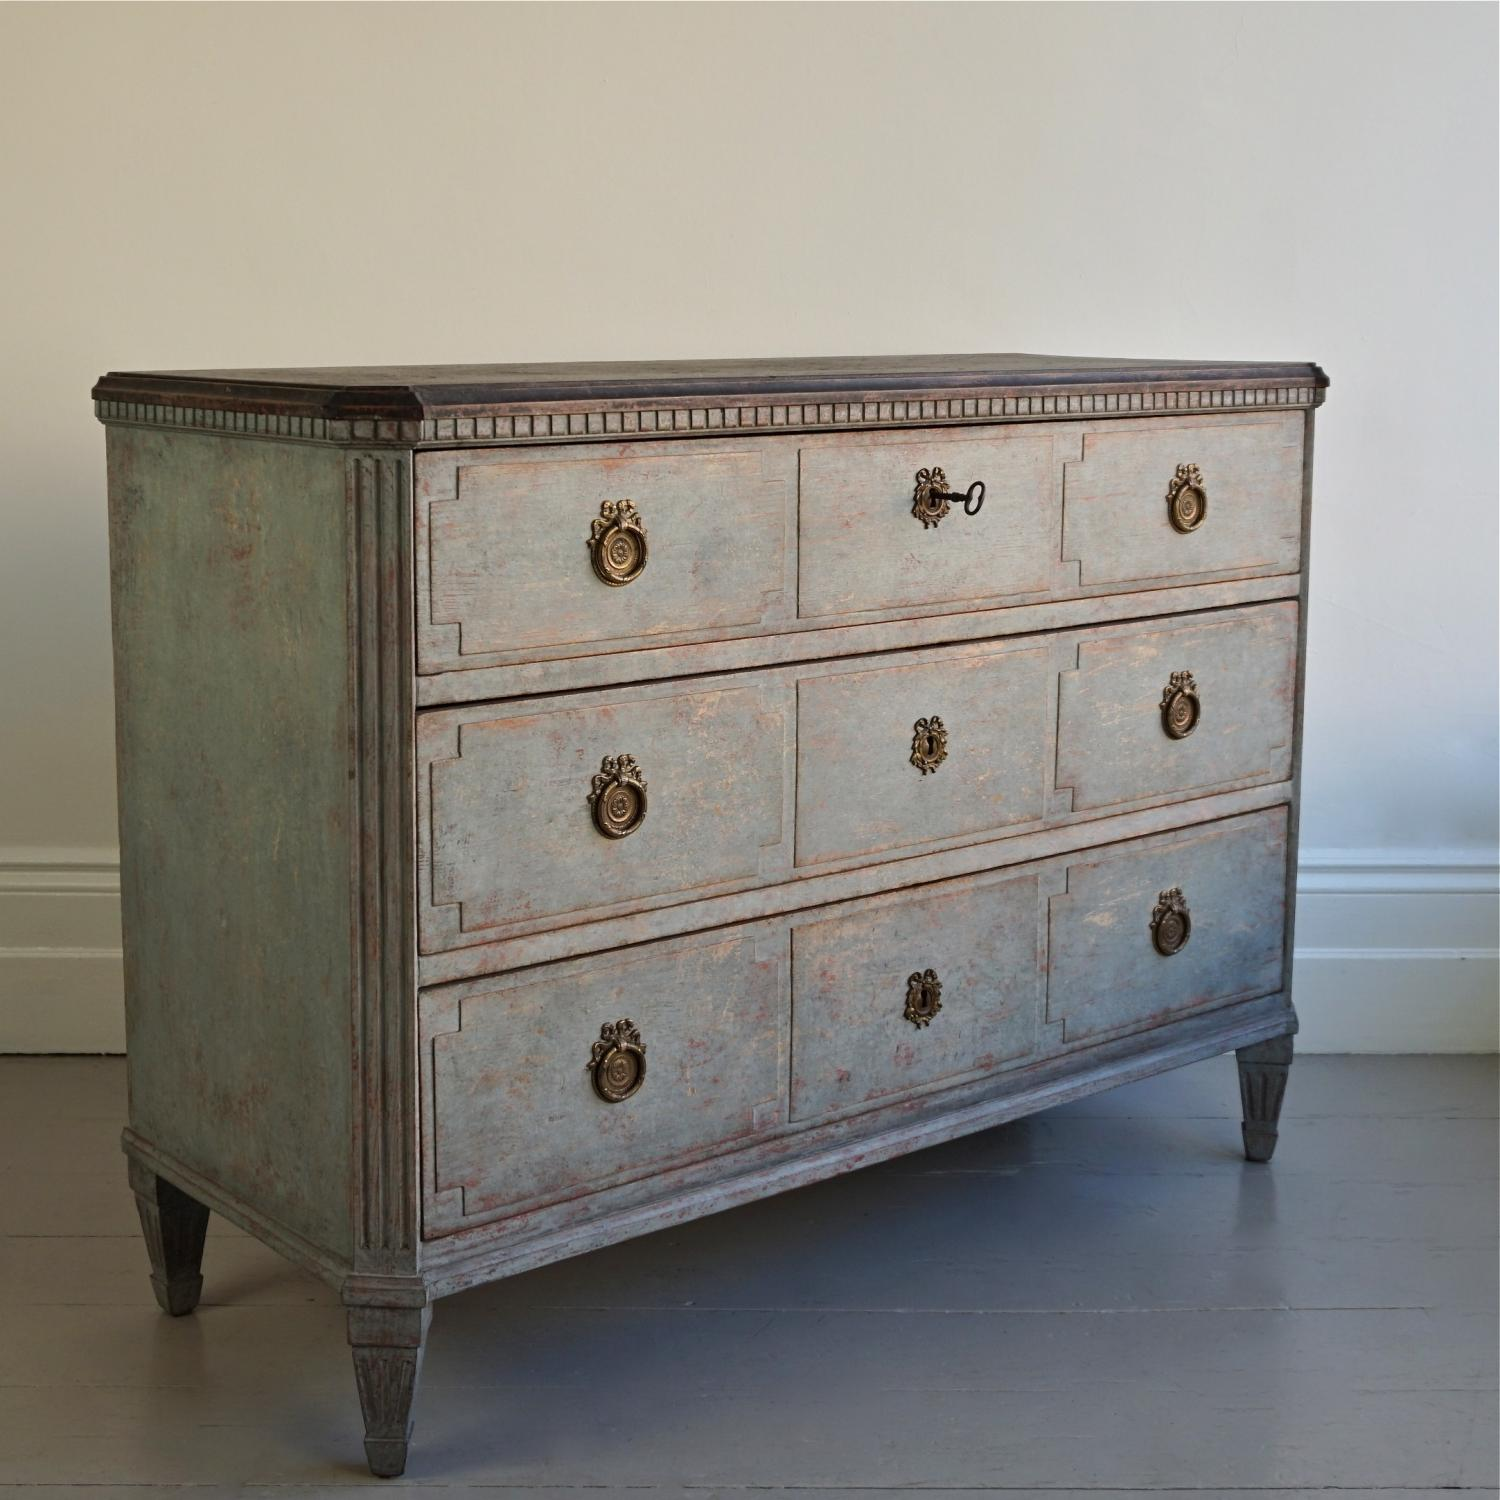 WONDERFUL SWEDISH GUSTAVIAN STYLE CHEST